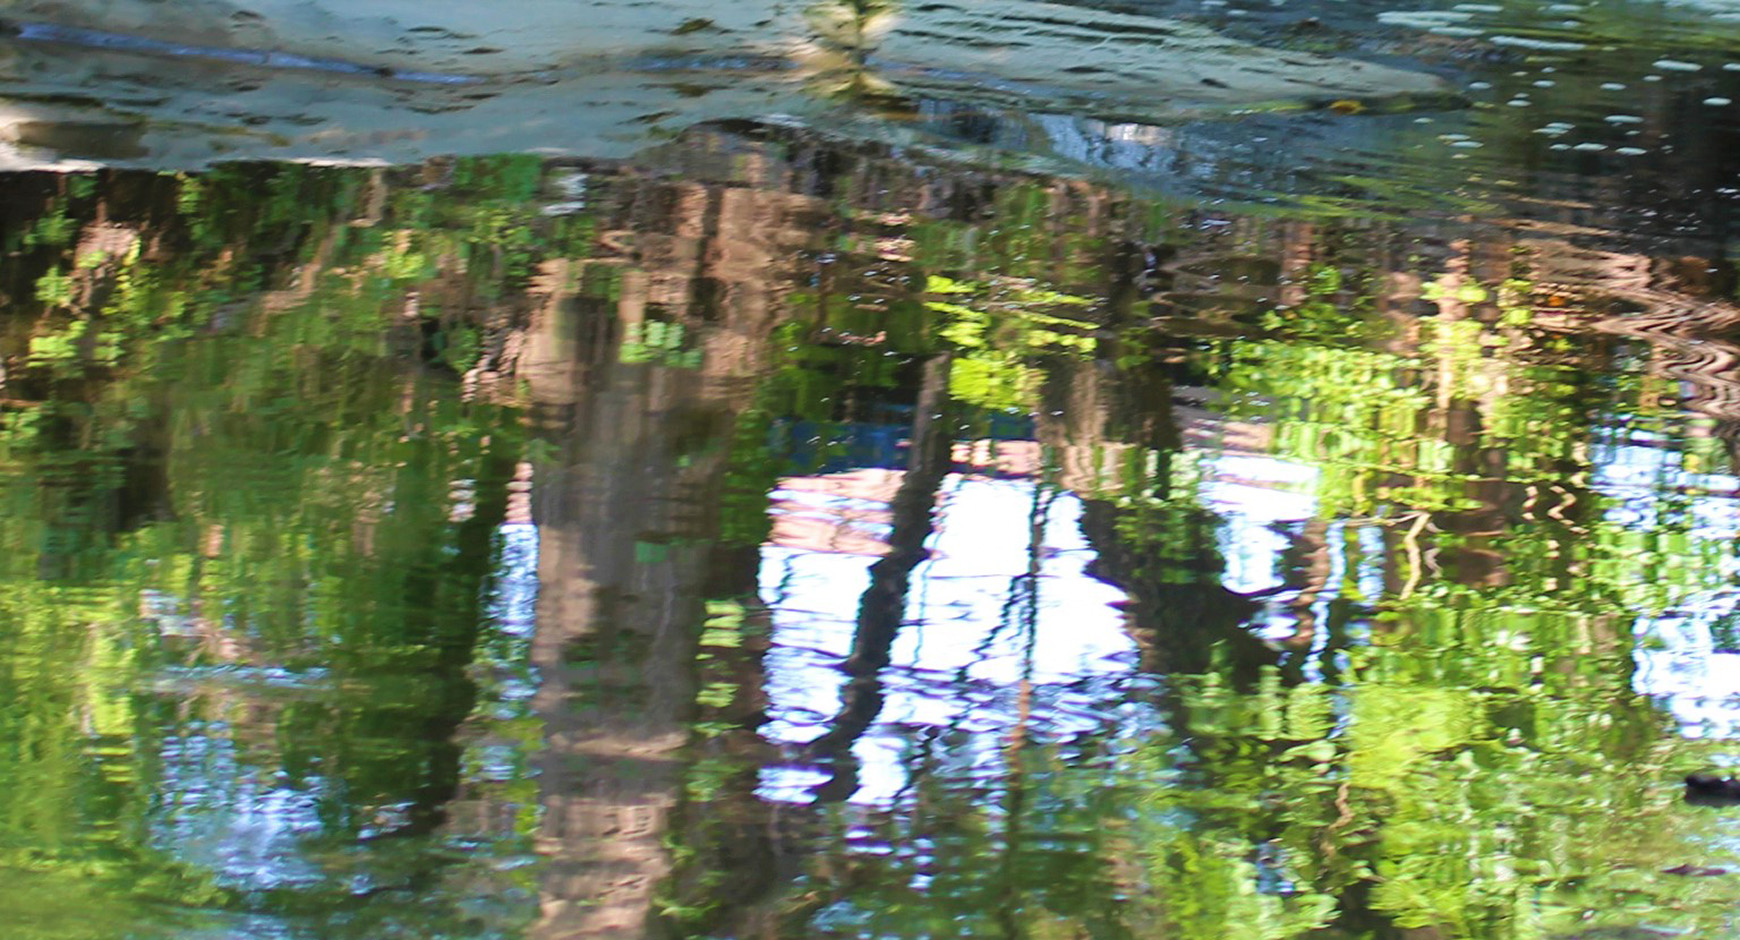 Waller Creek reflects